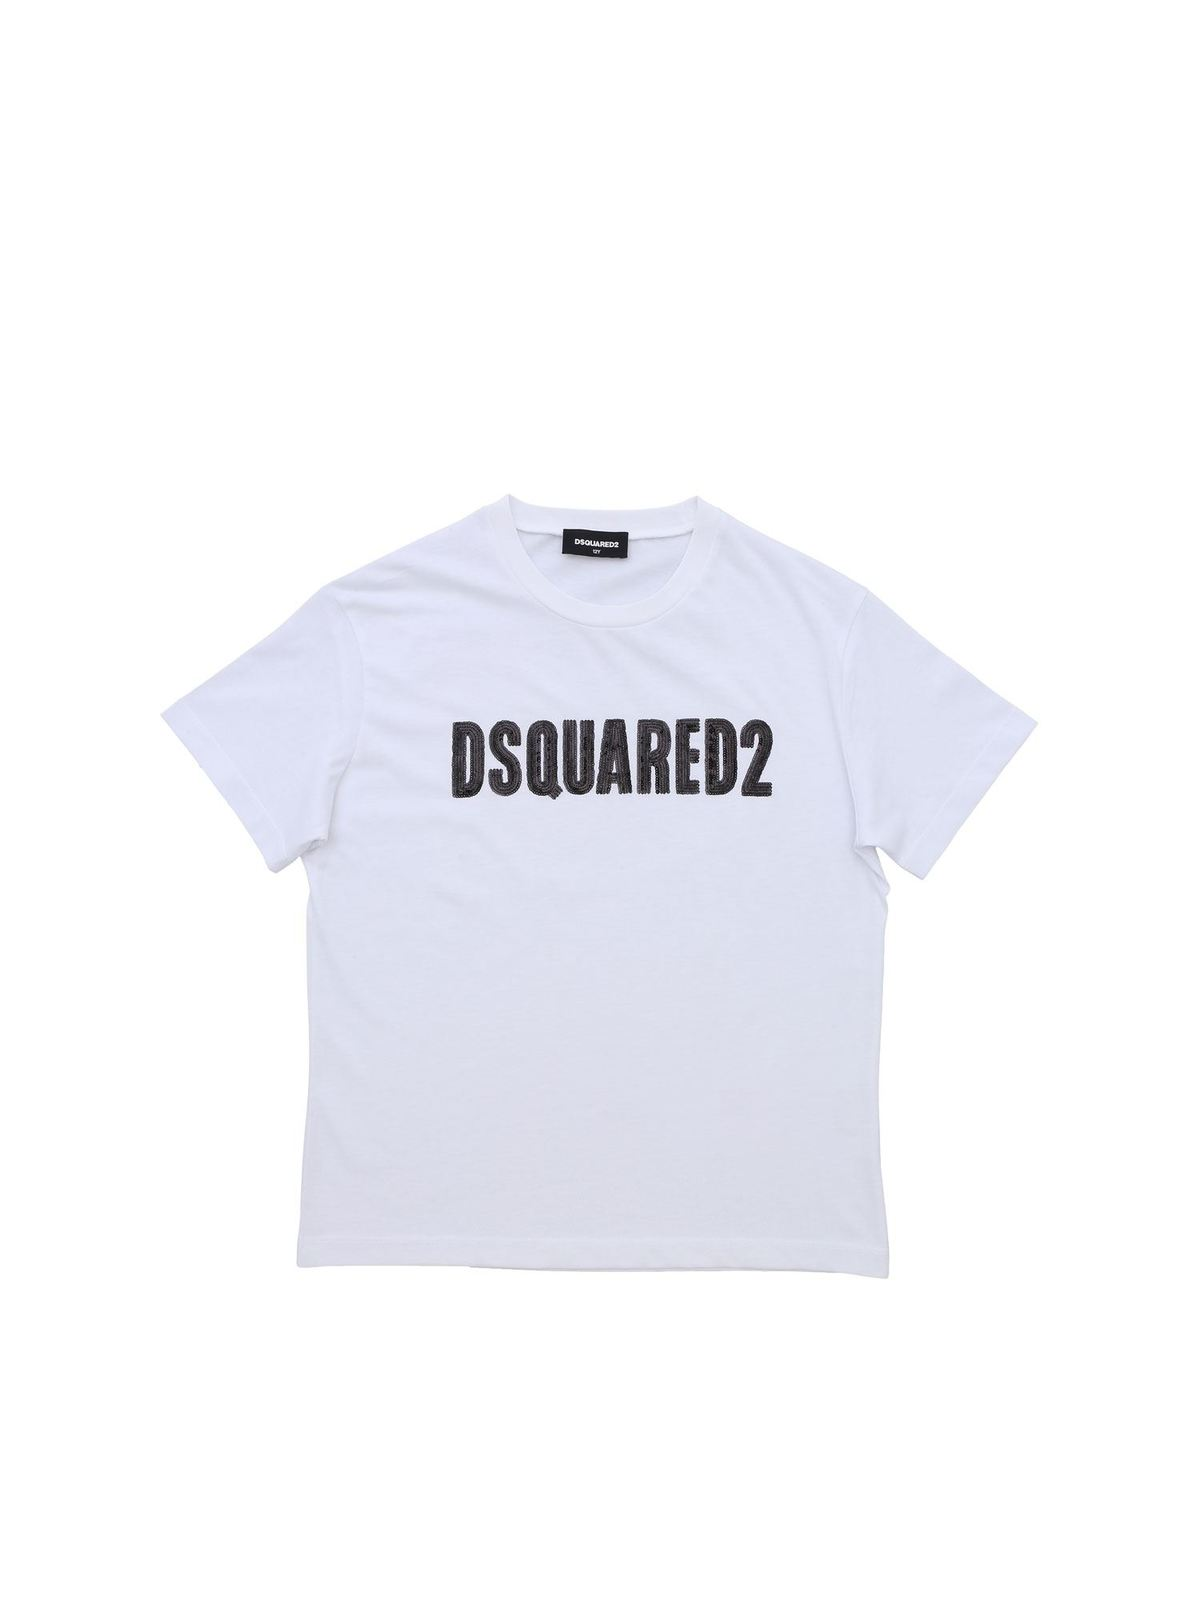 Dsquared2 WHITE T-SHIRT WITH MICRO SEQUINS LOGO